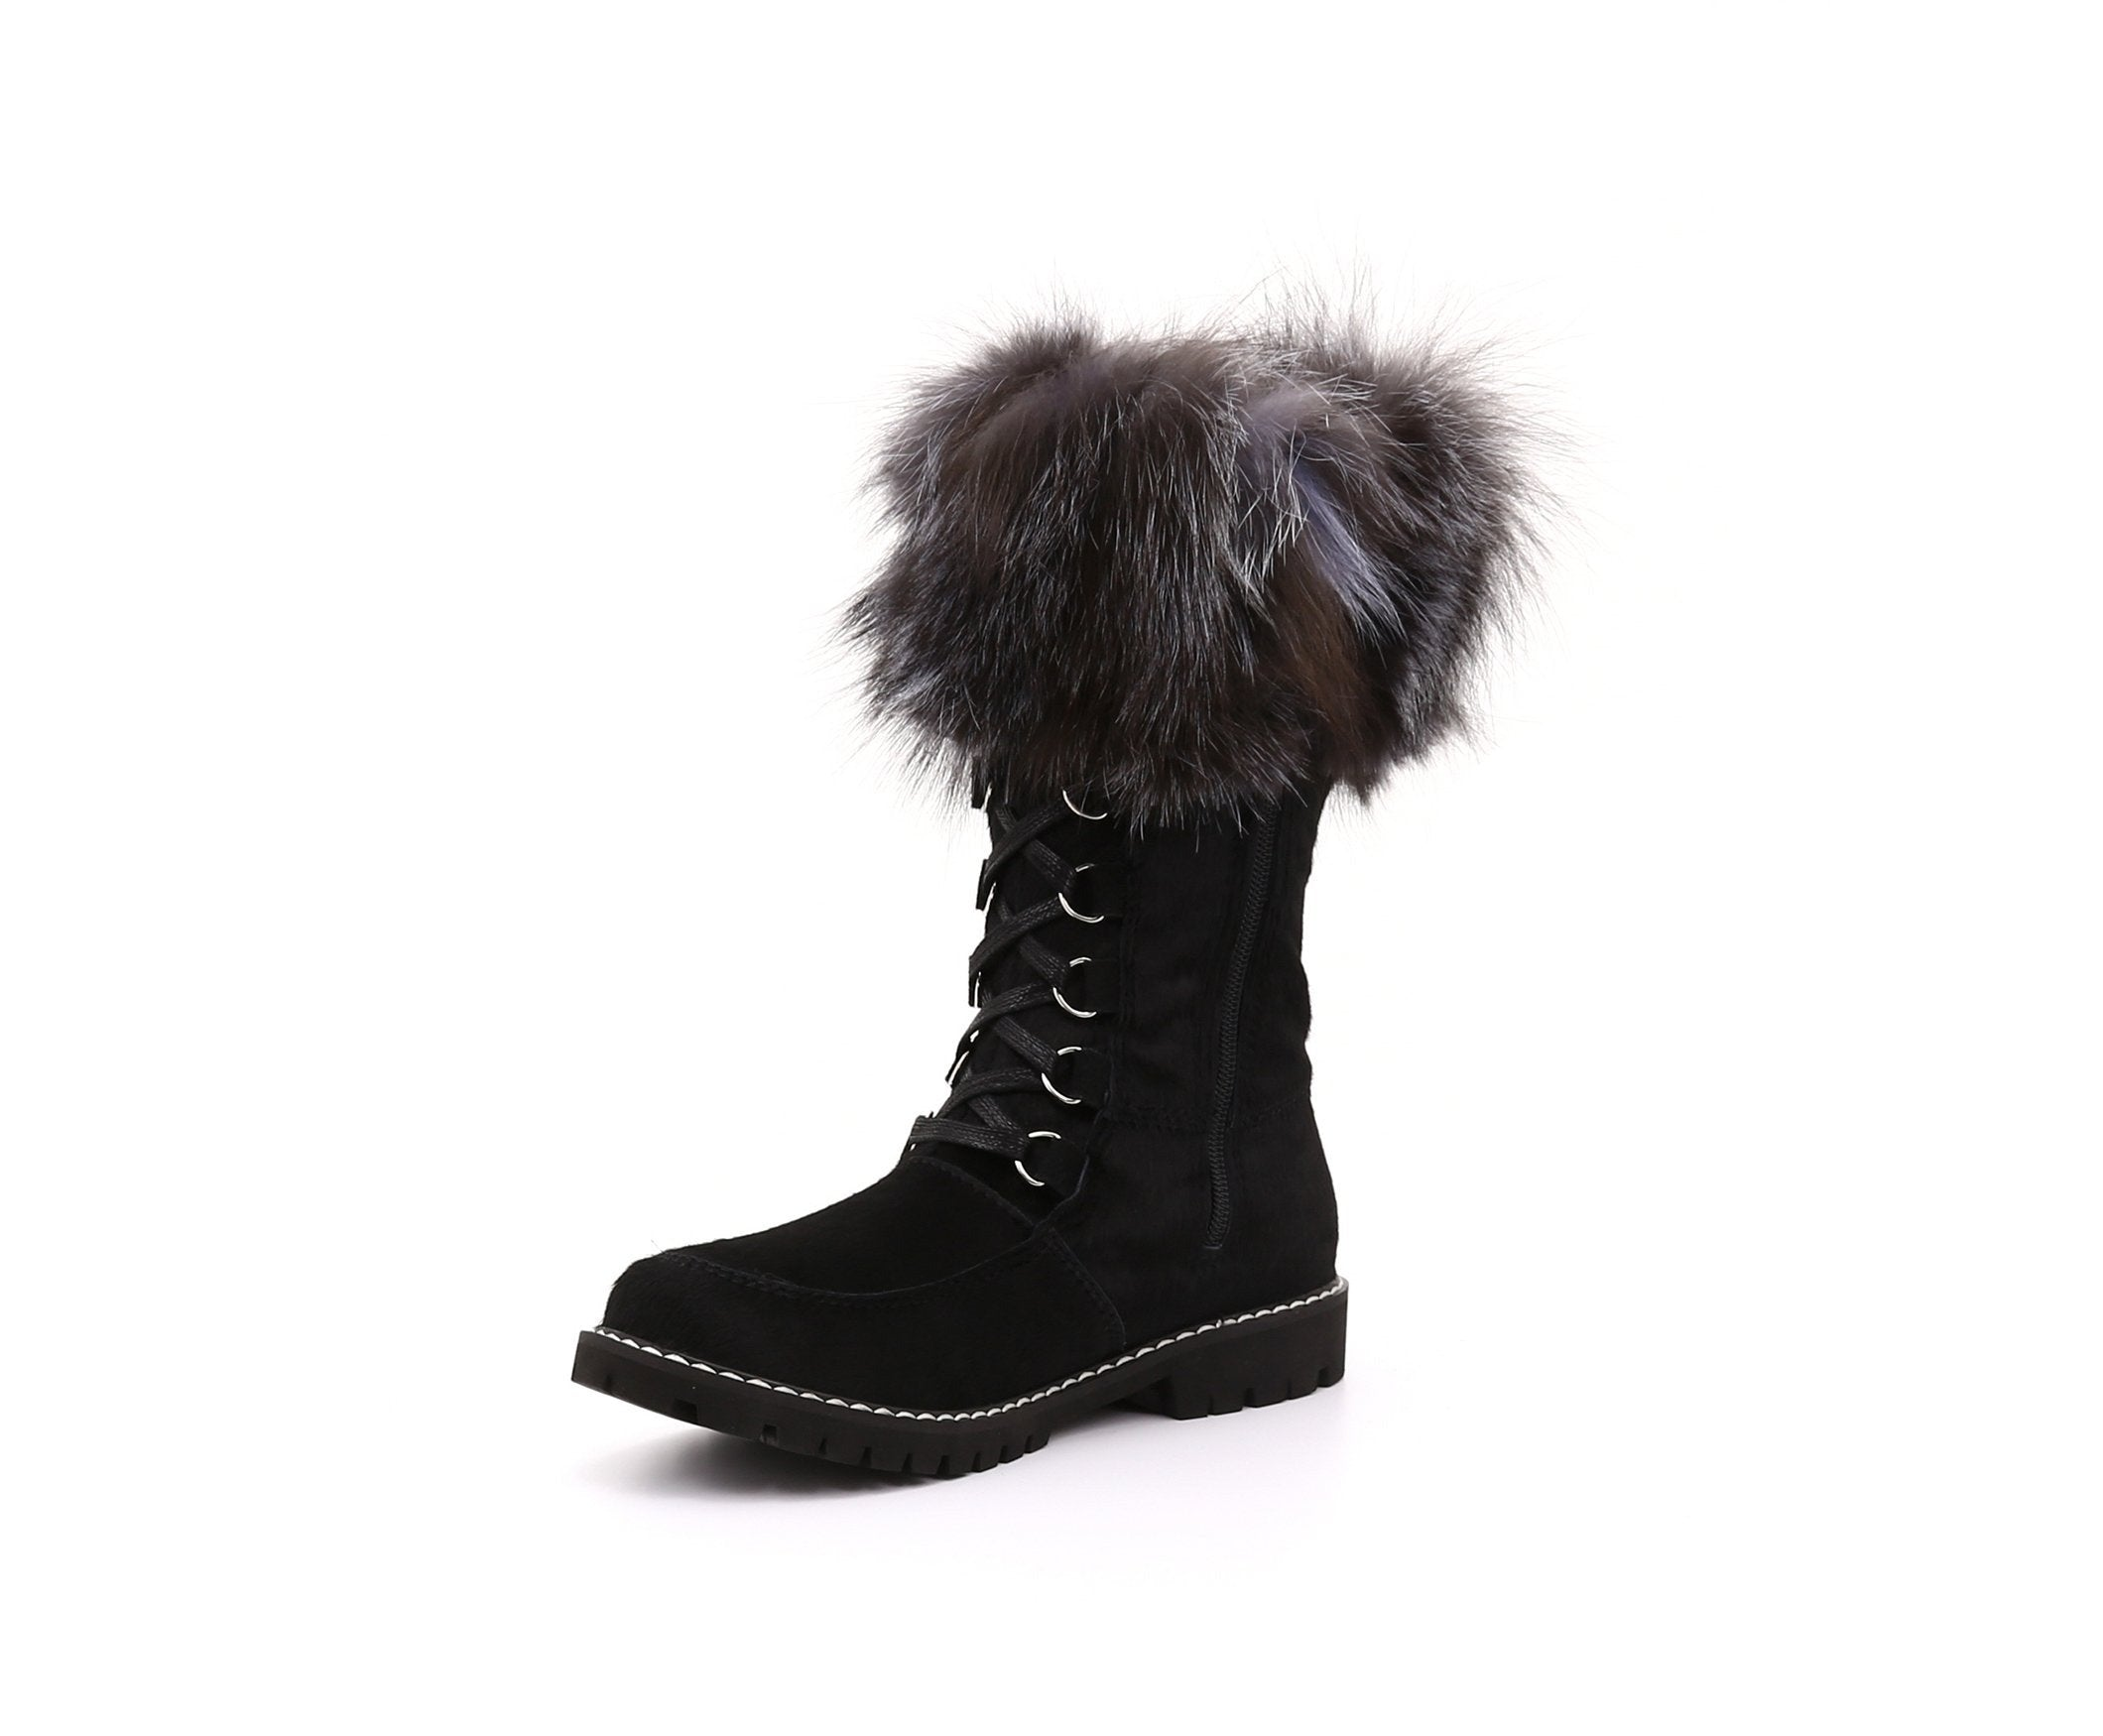 Jill Women's Winter Boot with Retractable Cleats - Alfred Cloutier Ltd. - Canada